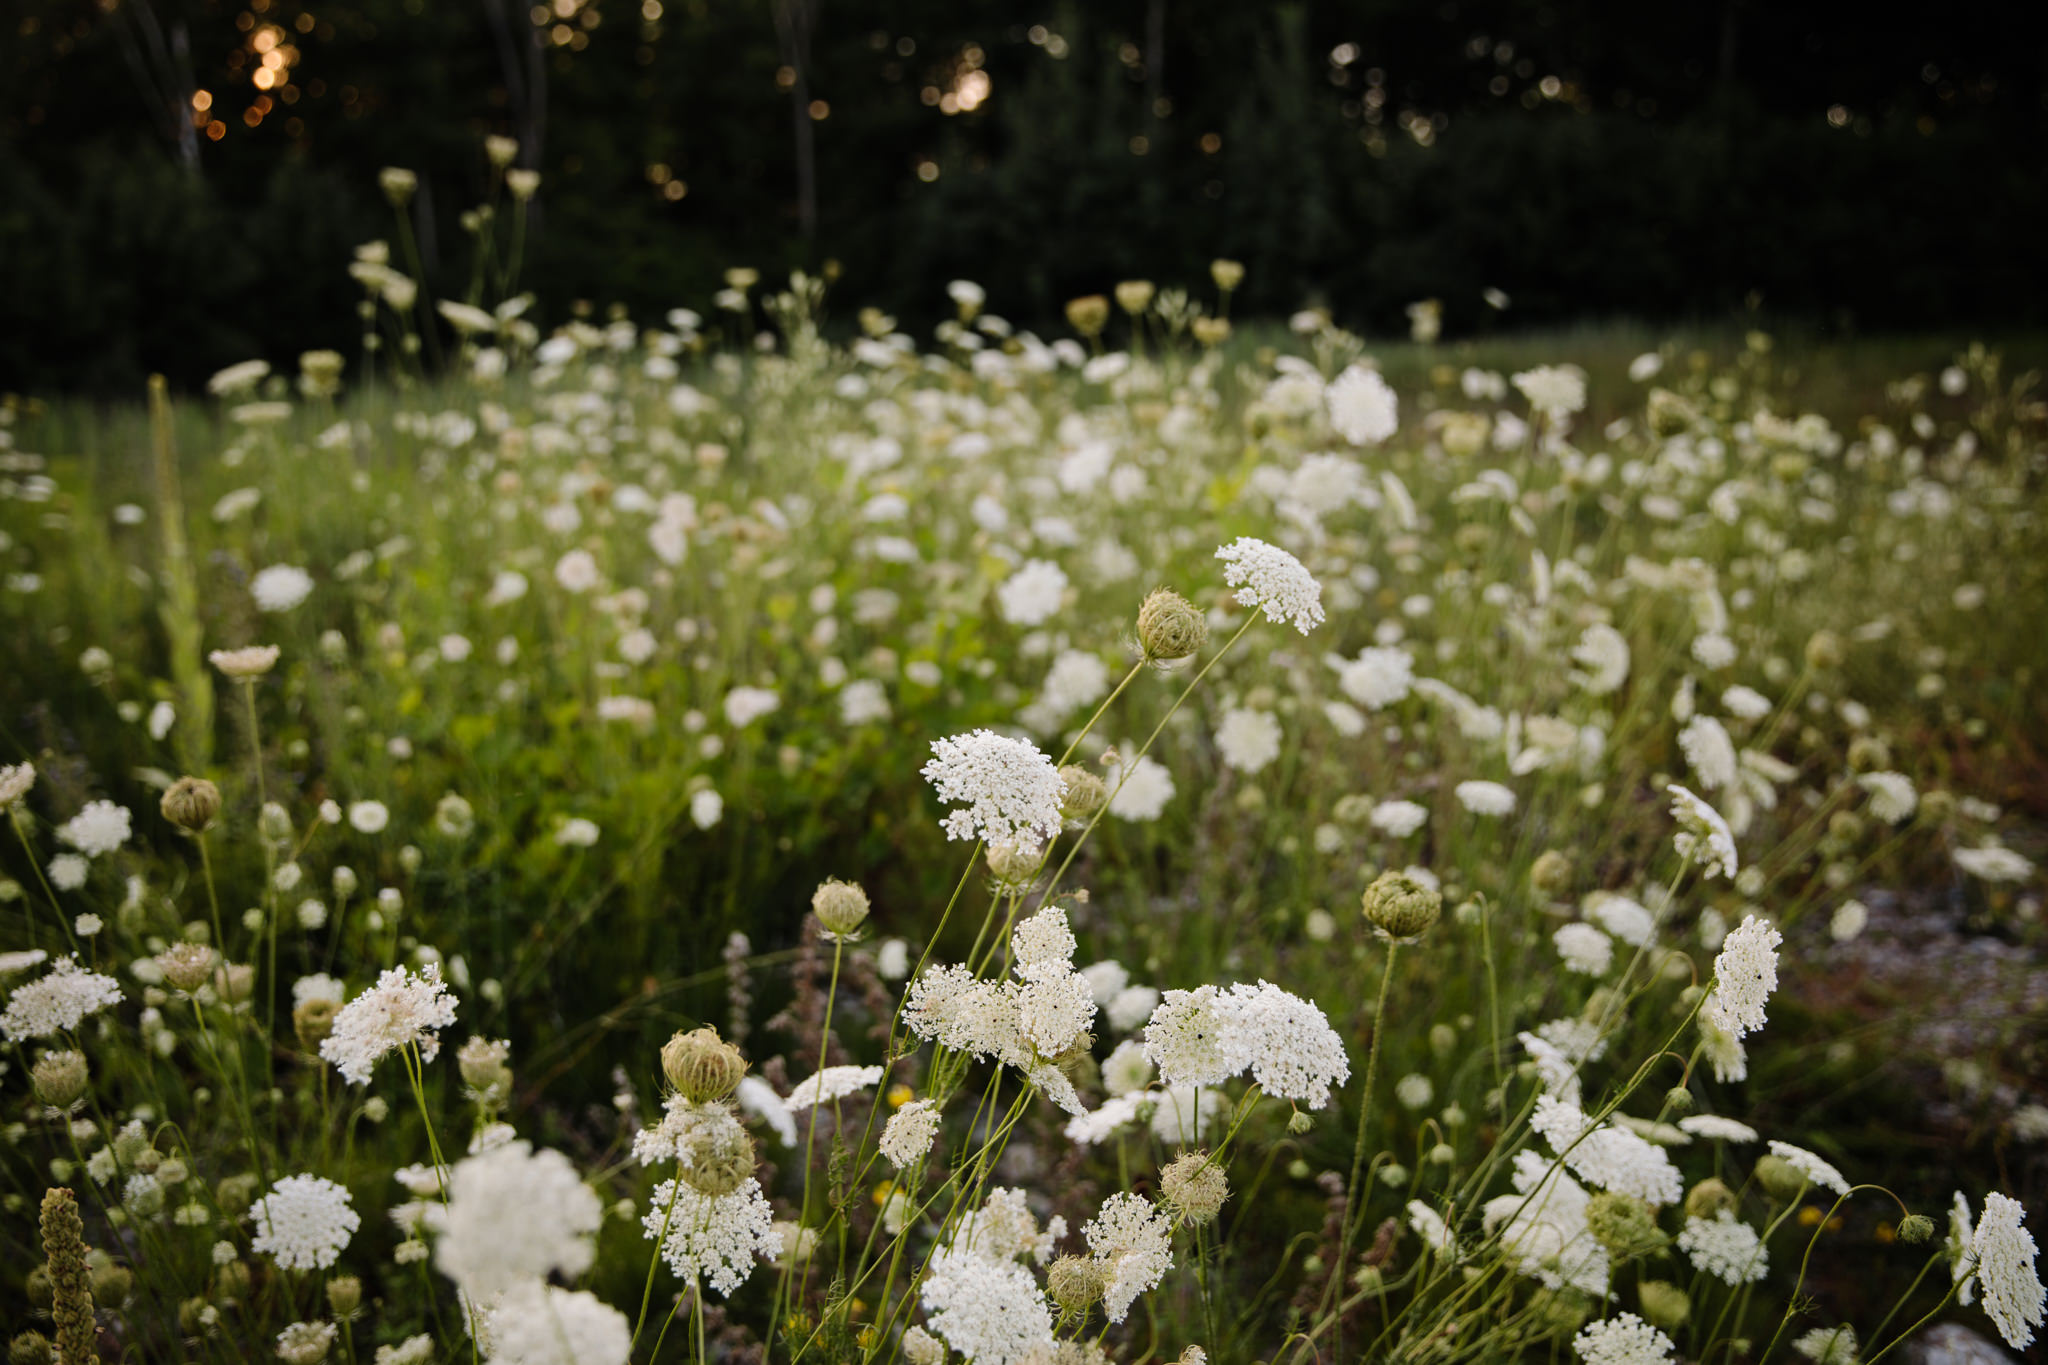 field of queen anne lace weeds